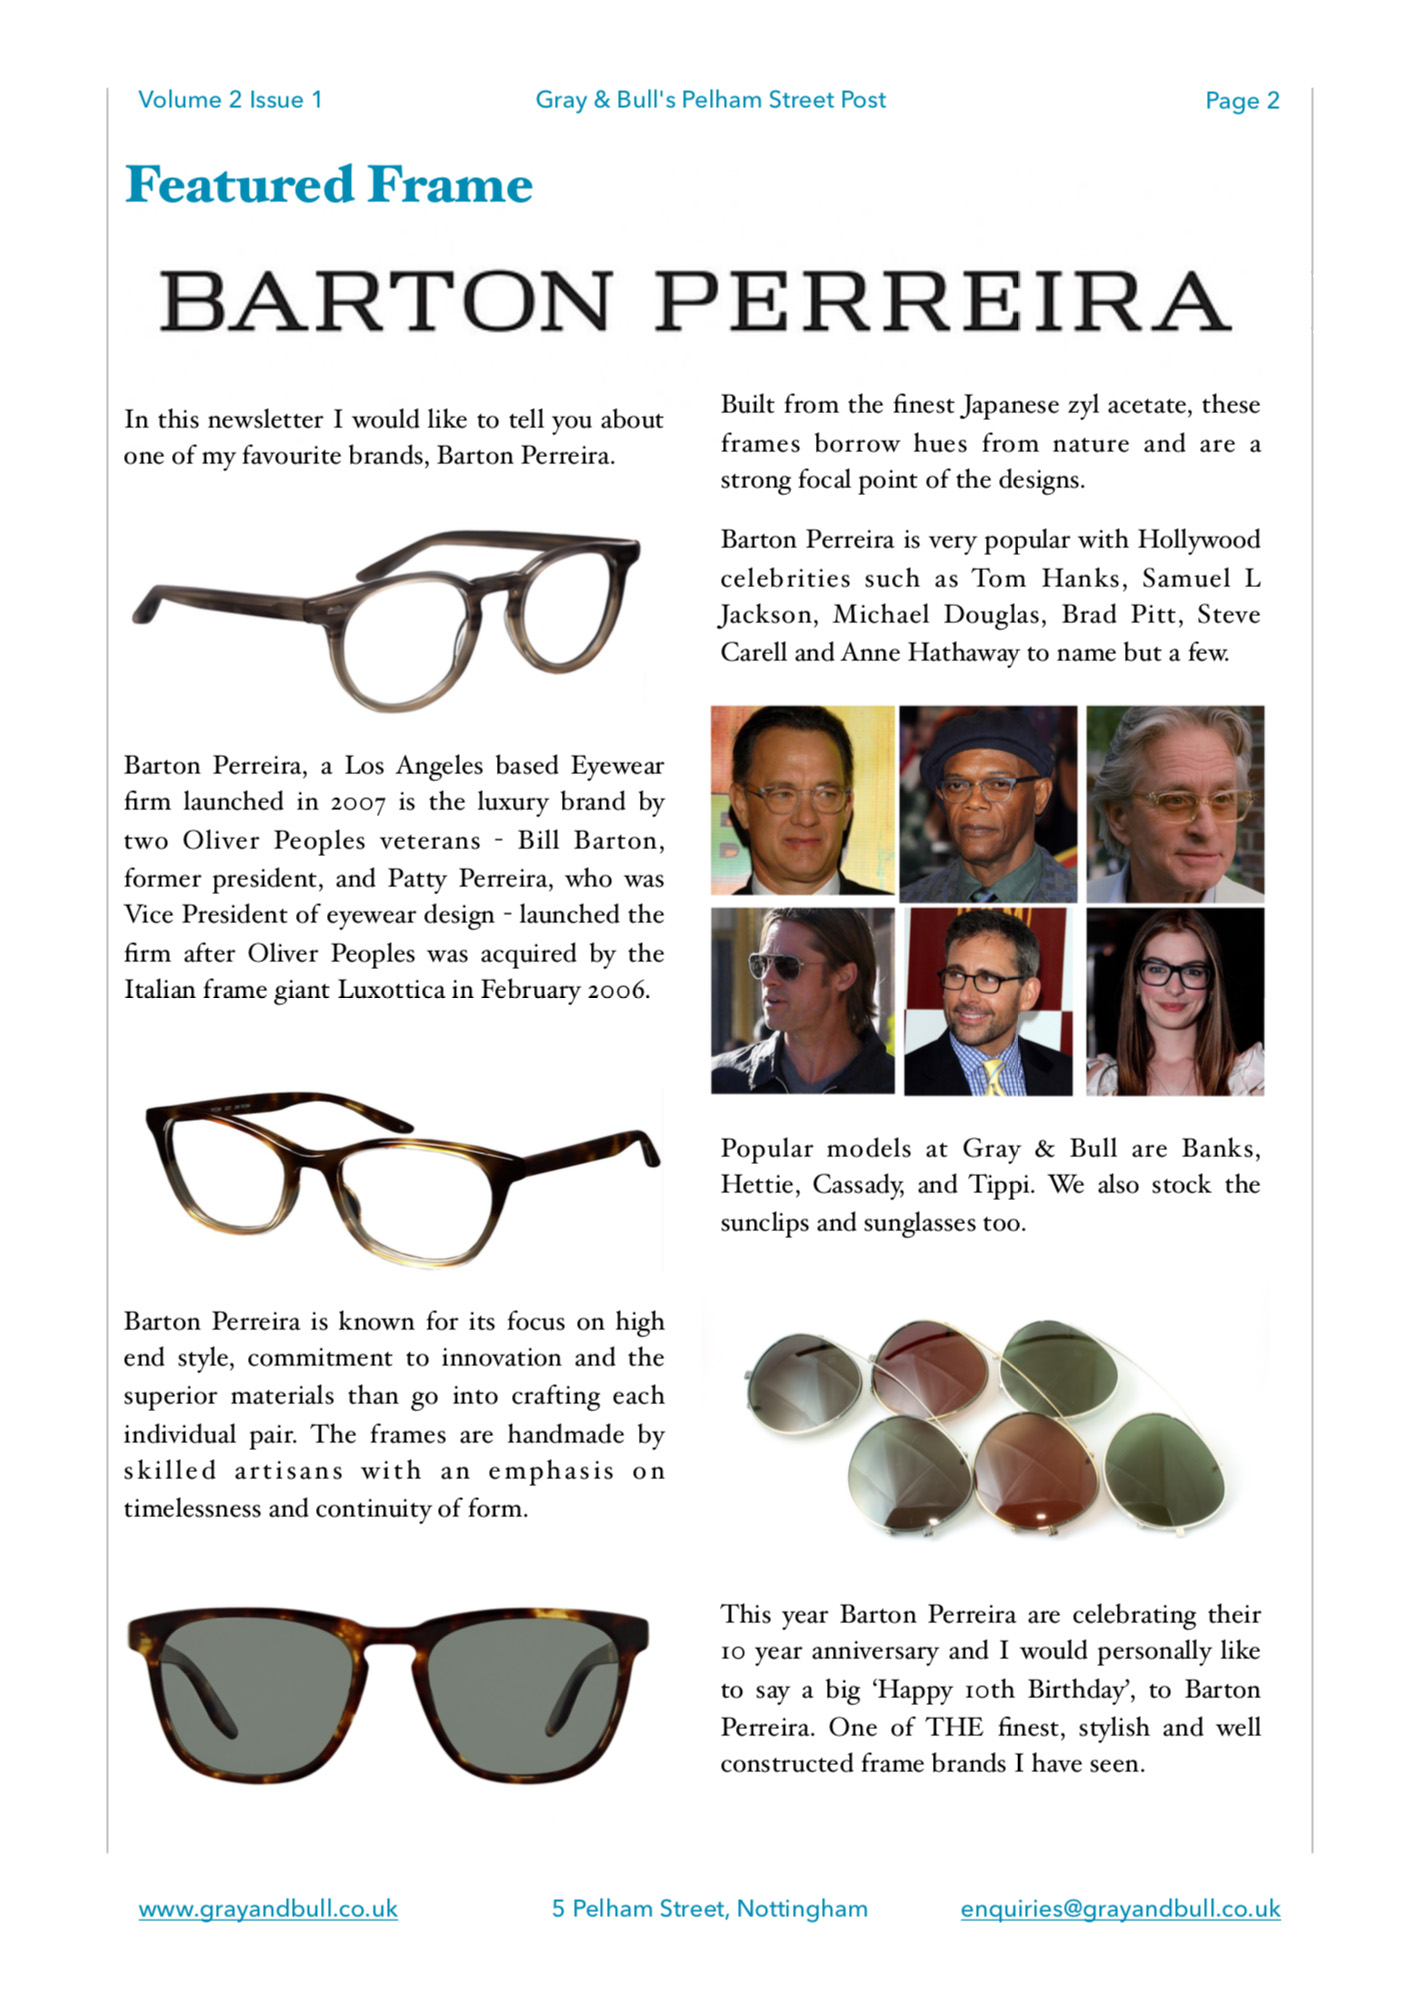 Barton Perreira Featured Frame Pelham Street Post